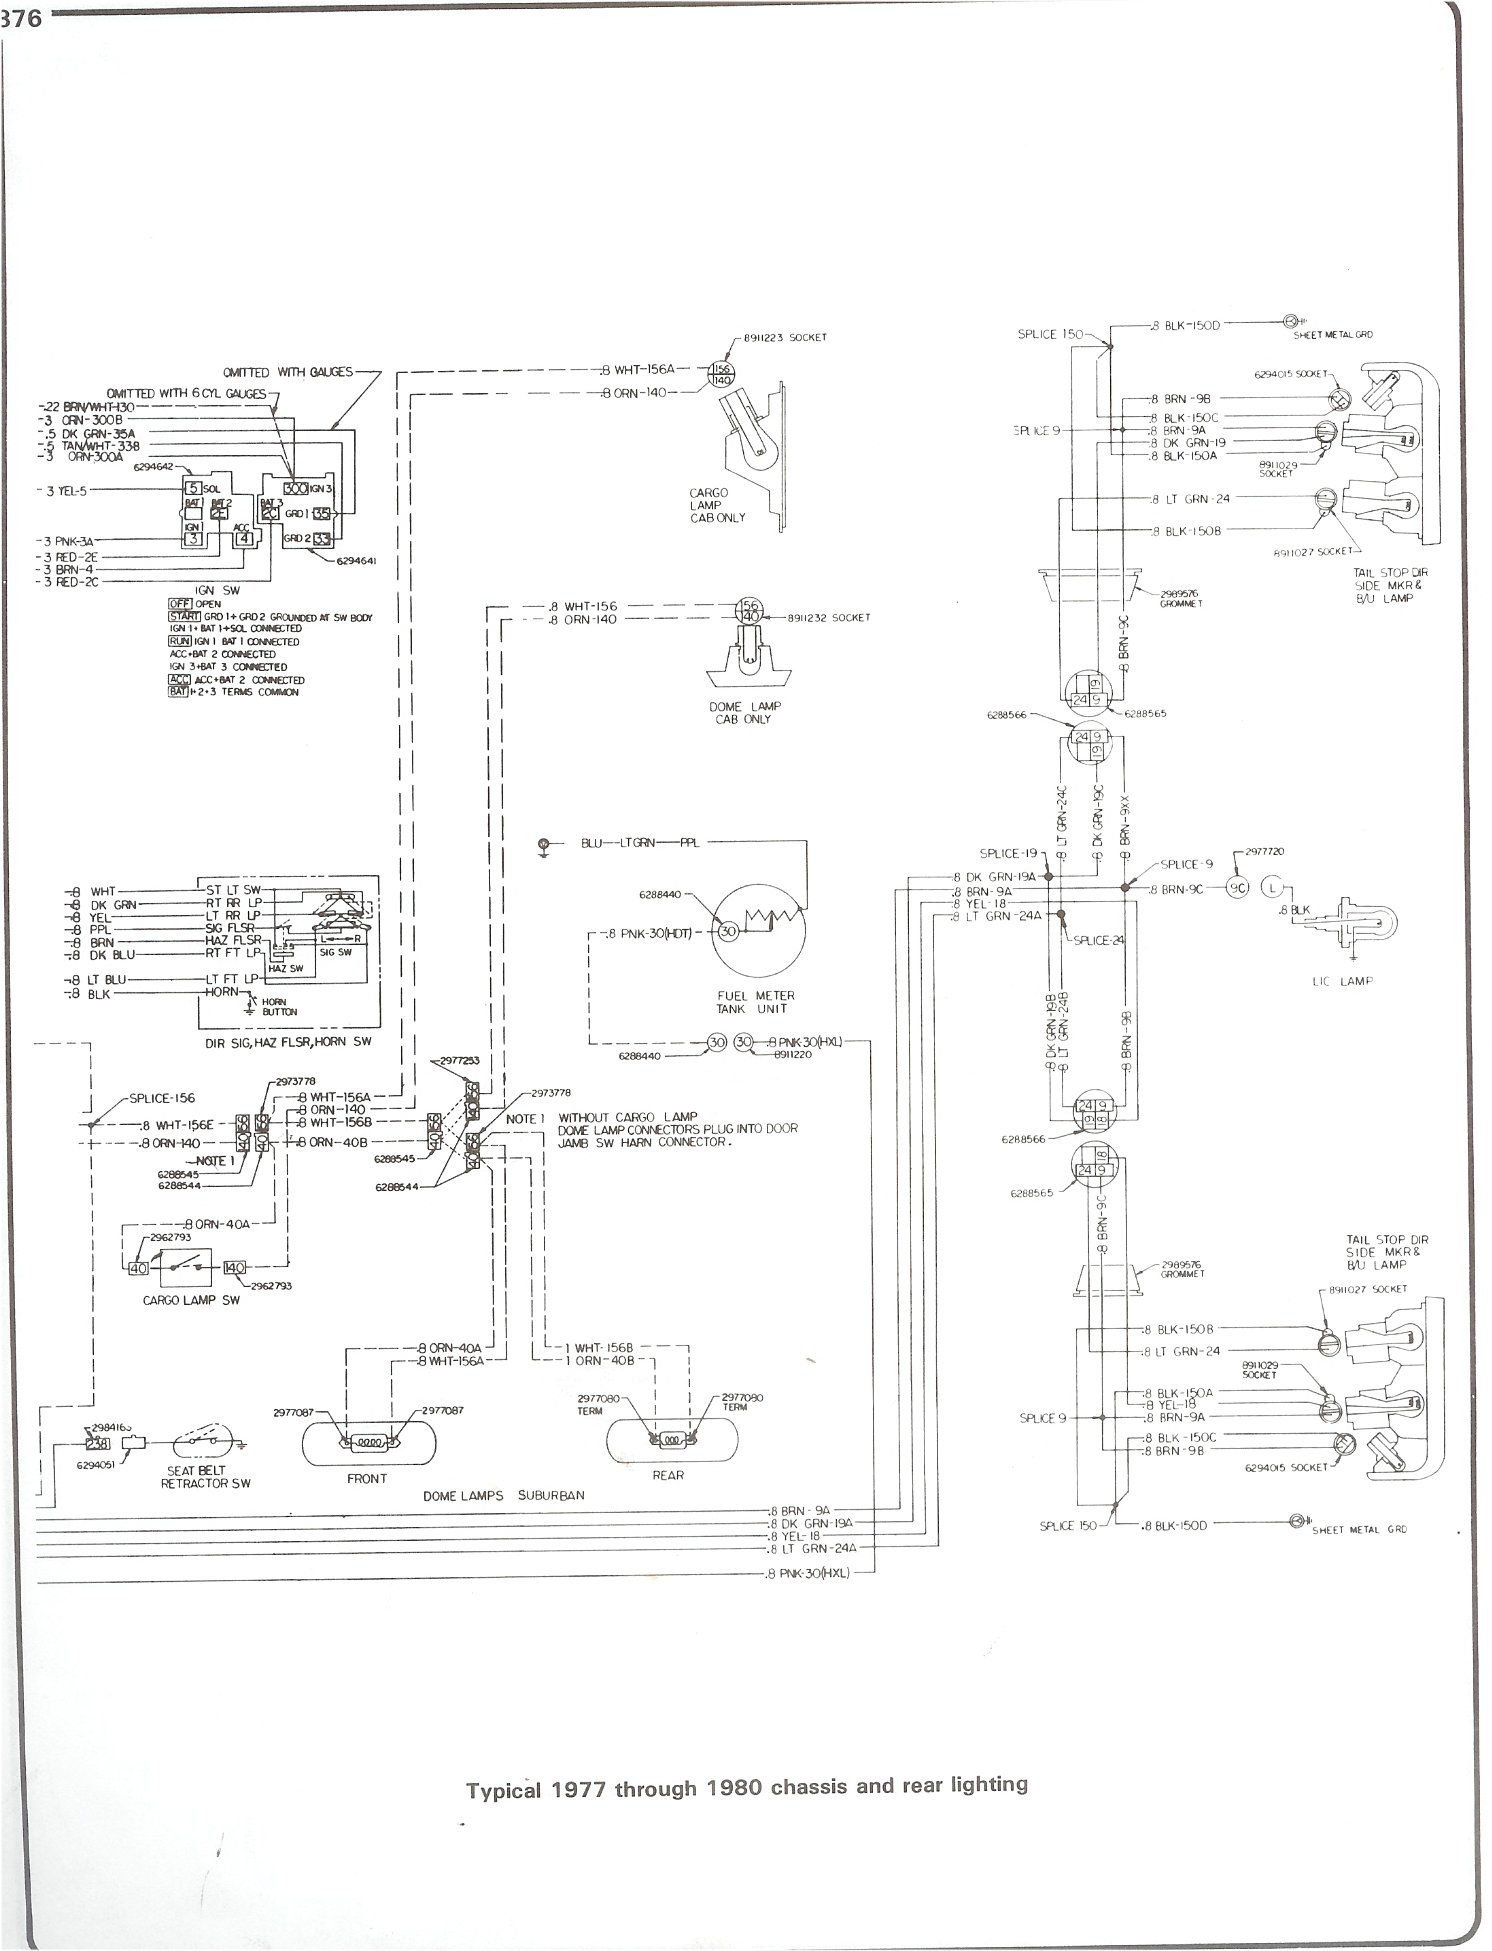 87 Chevy Truck Fuse Diagram Images Gallery